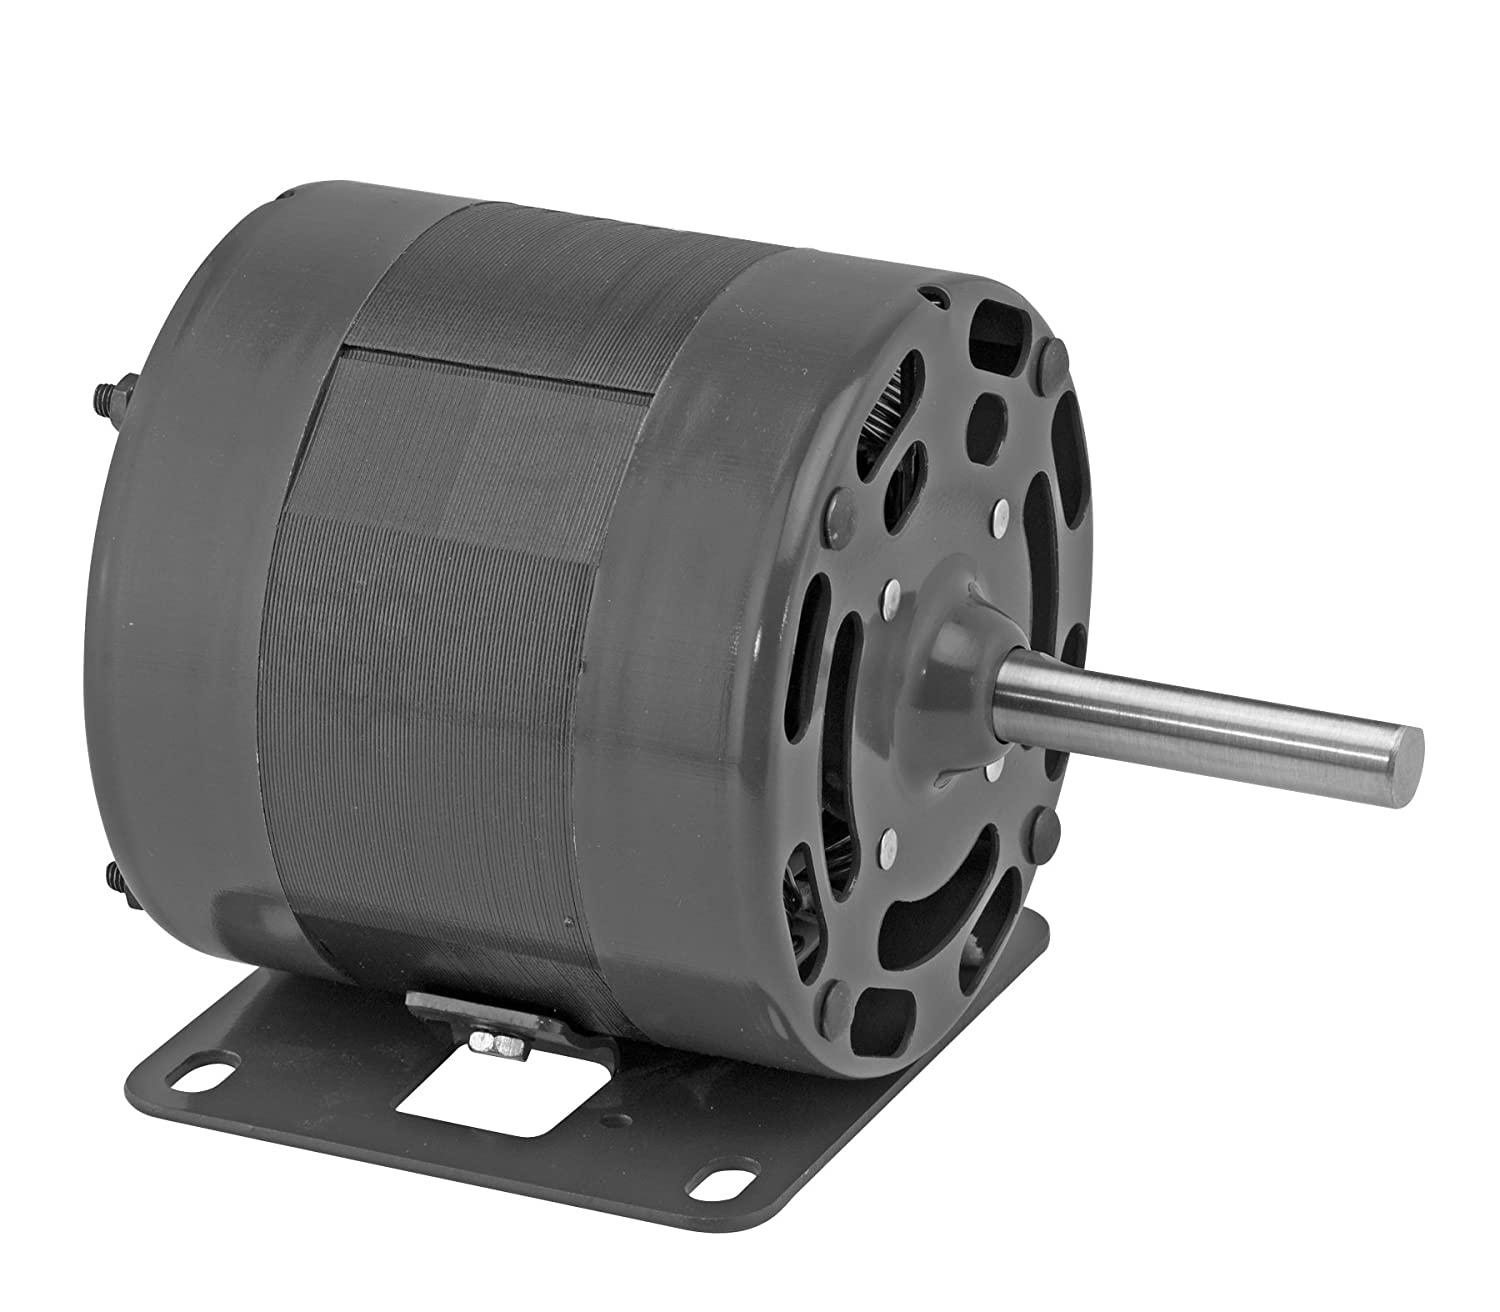 """Top Fasco D1006 4.4"""" Frame Open Ventilated Shaded Pole OEM Replacement Motor with Sleeve Bearing and Rigid Base Mount, 1/4HP, 1600rpm, 115V, 60Hz, 7.2 amps free shipping"""